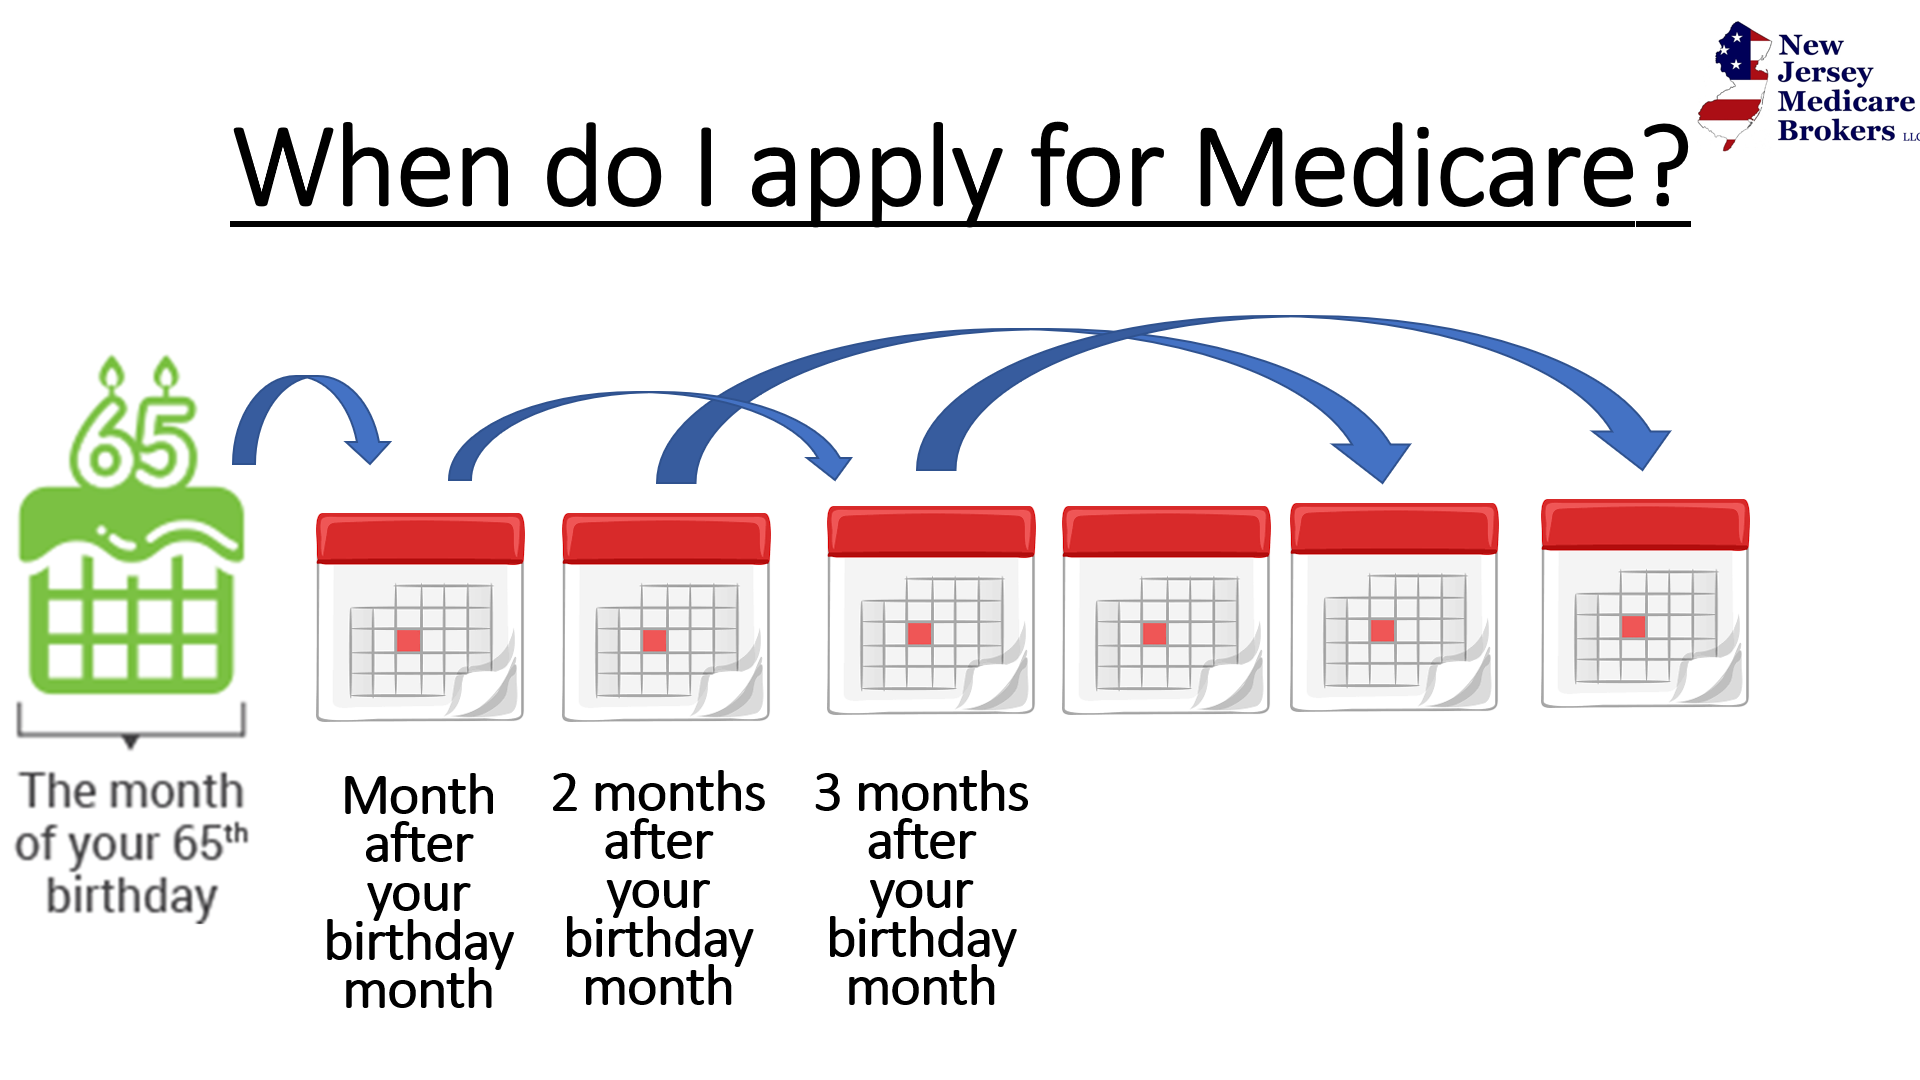 Medicare will have a lag if applying during or after birthday month